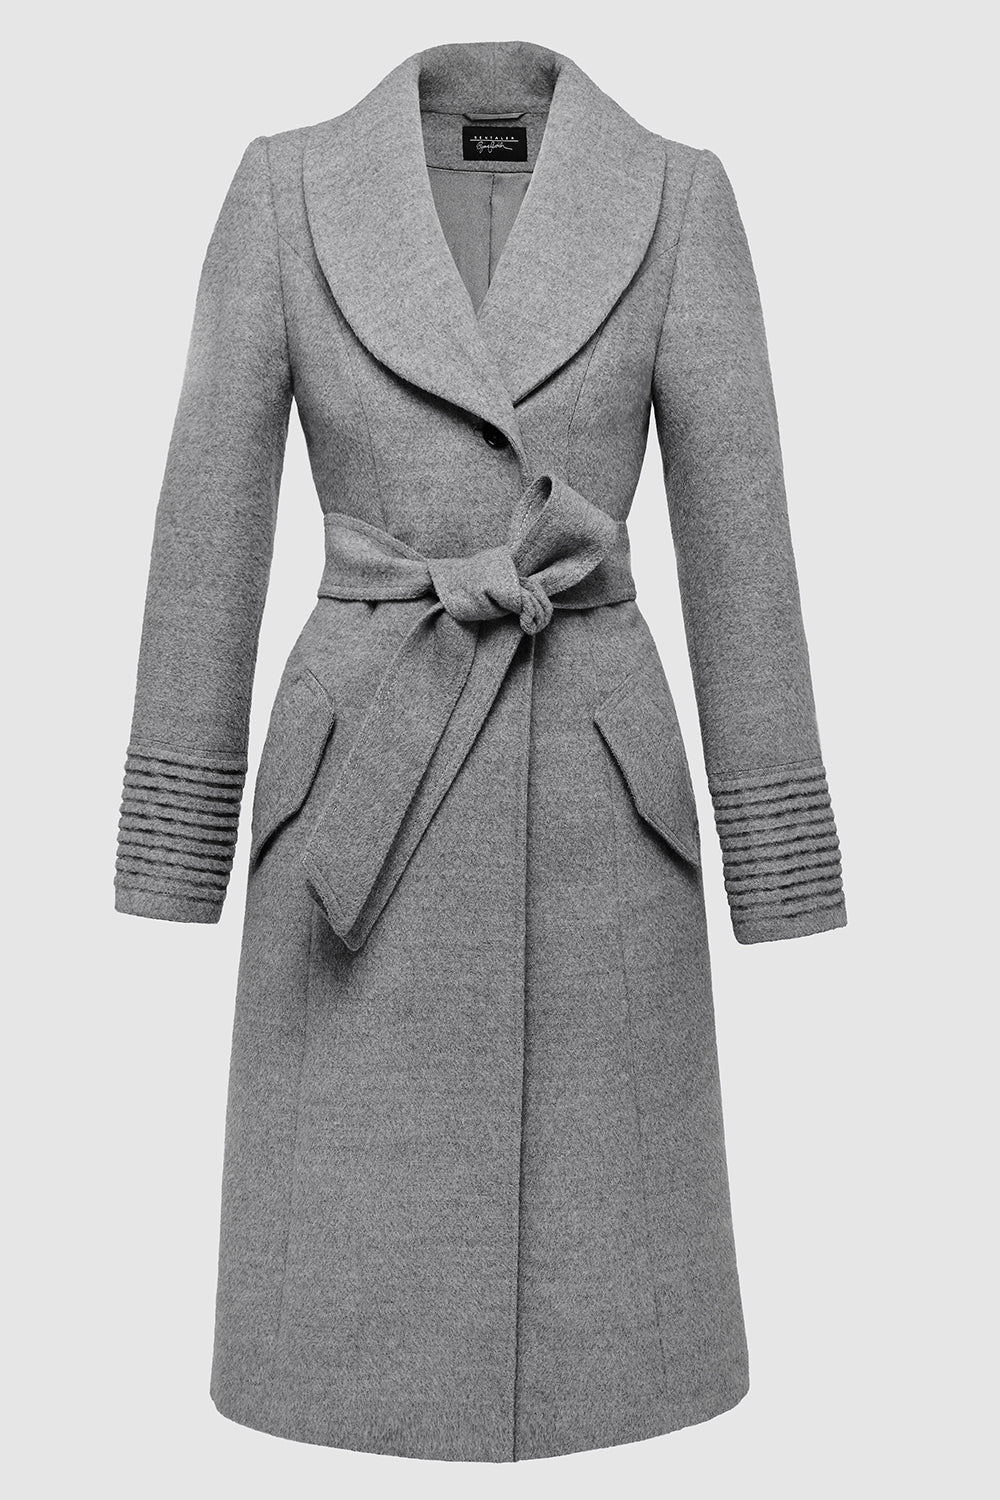 Sentaler Long Coat with Fur Collar featured in Baby Alpaca and available in Shale Grey. Seen off model.